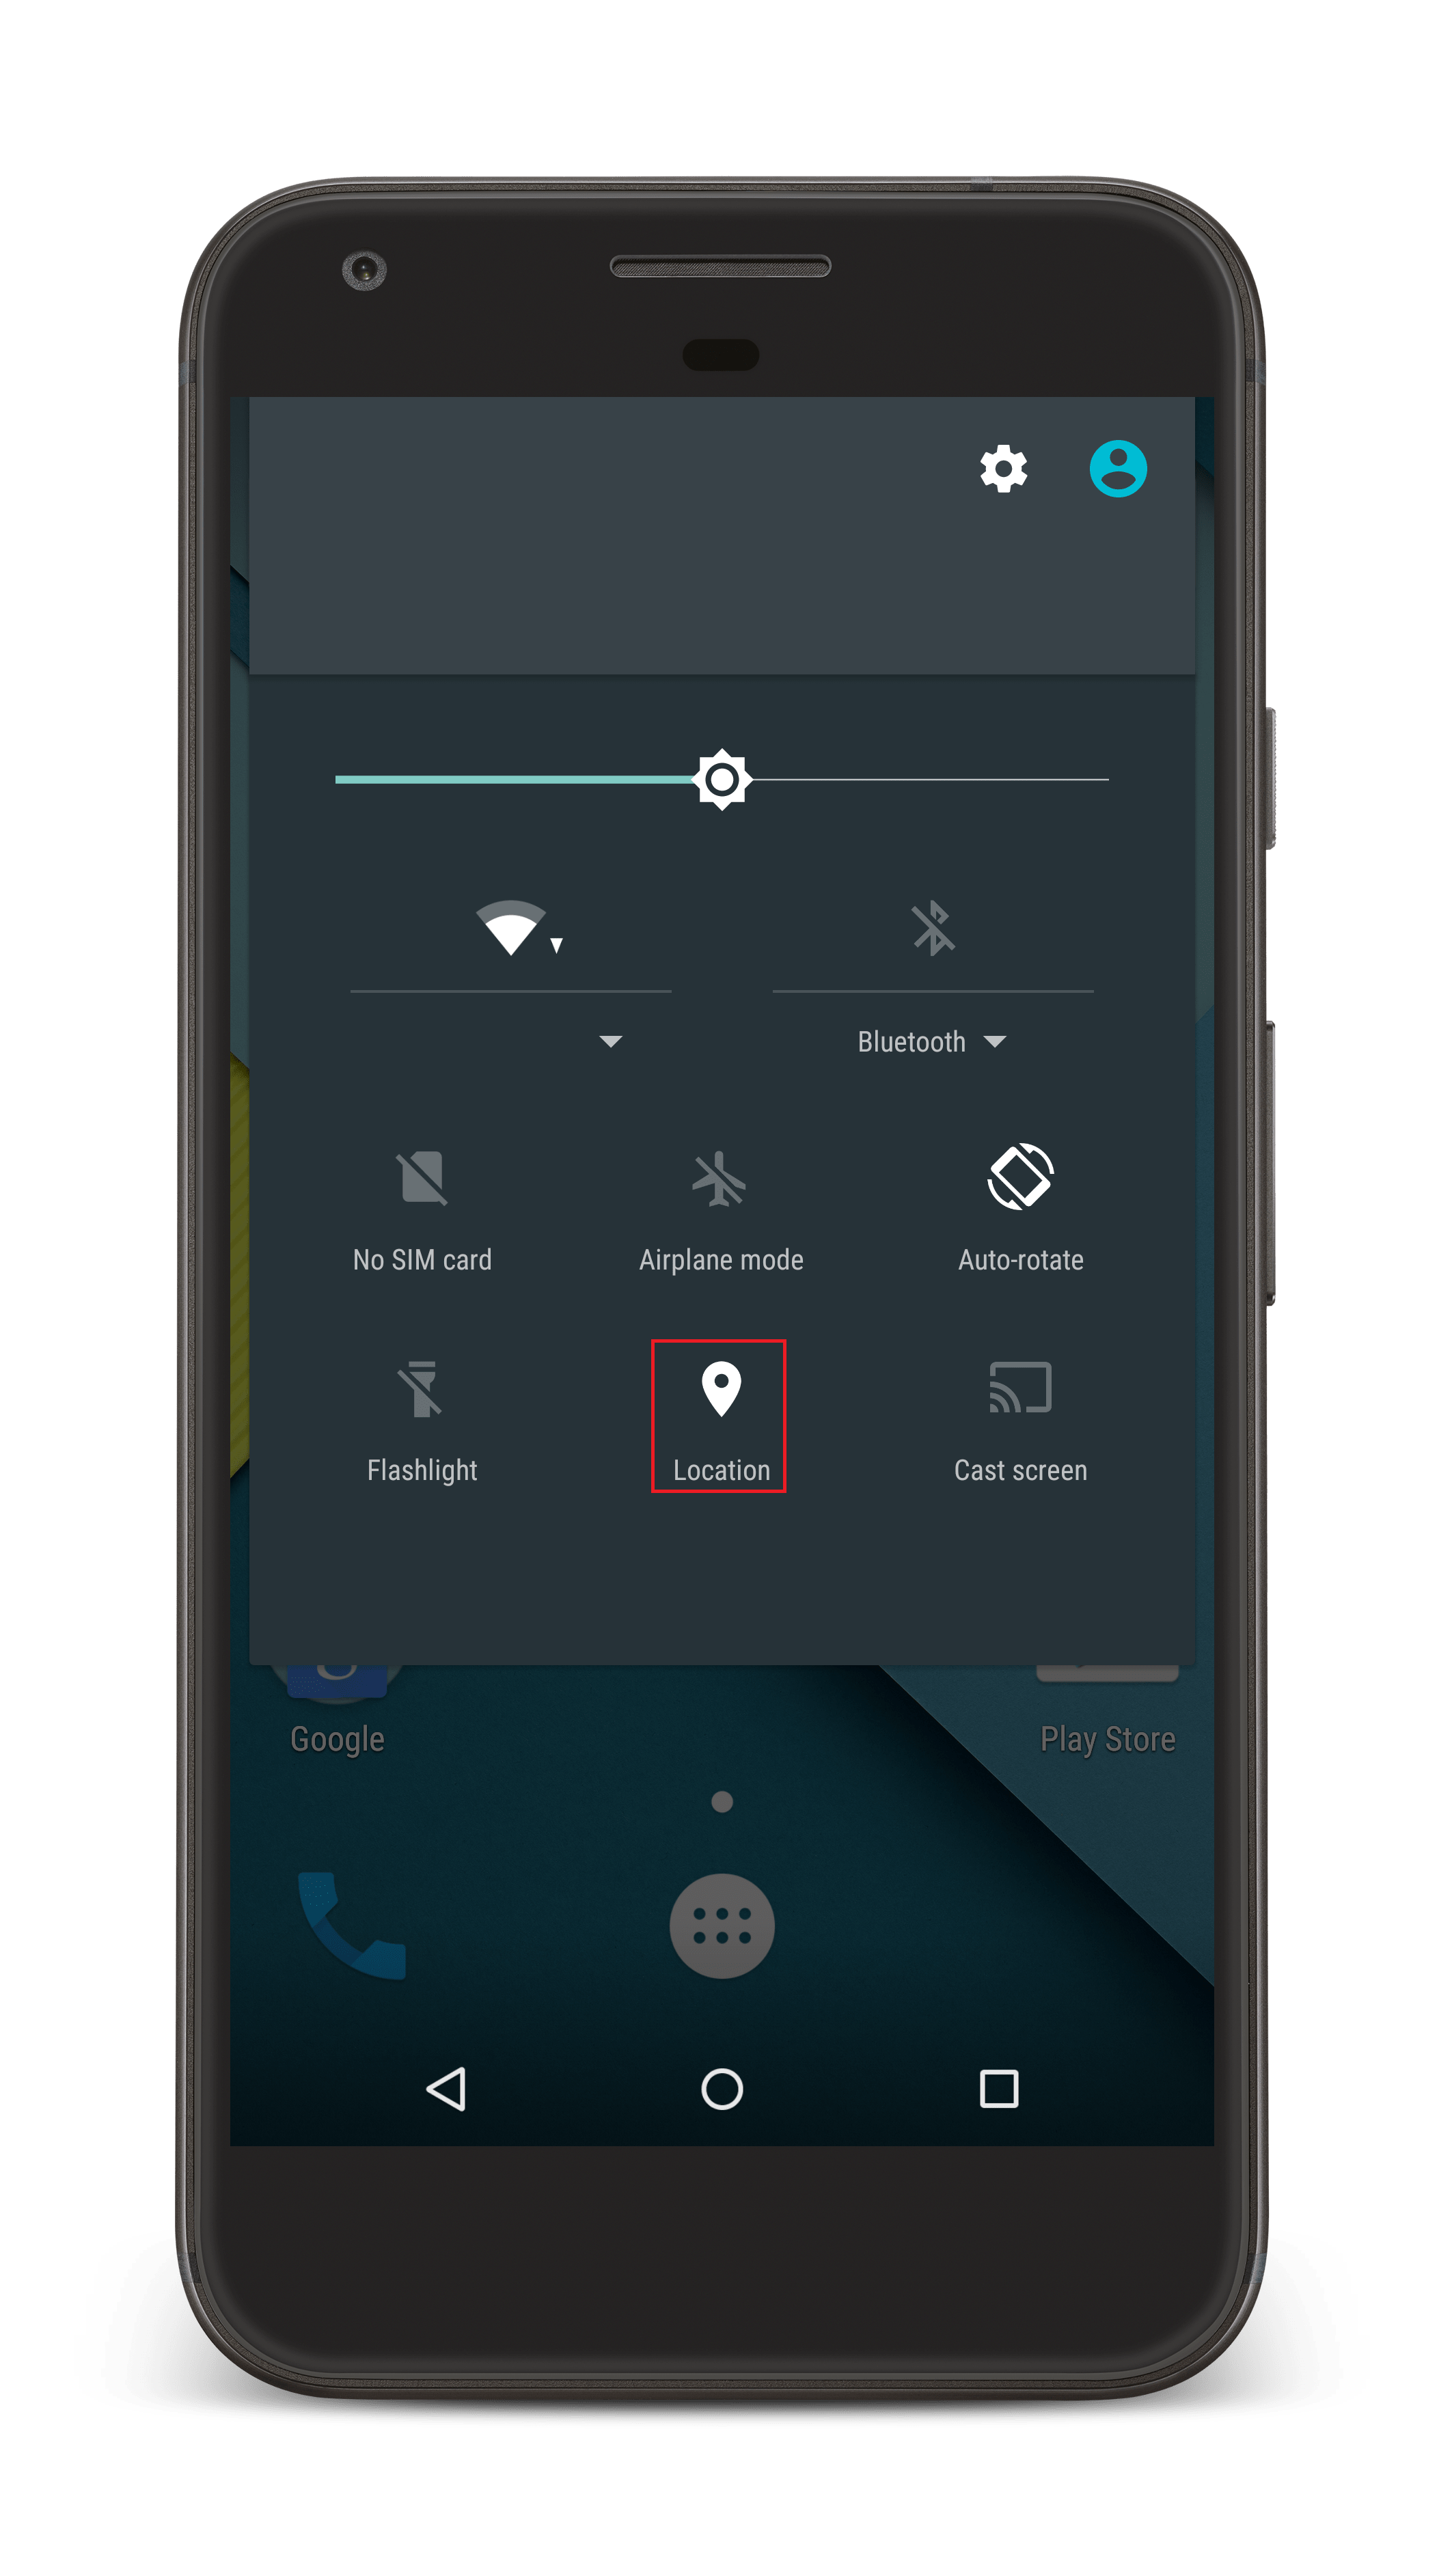 Location icon on Status Bar for Android Geotracking